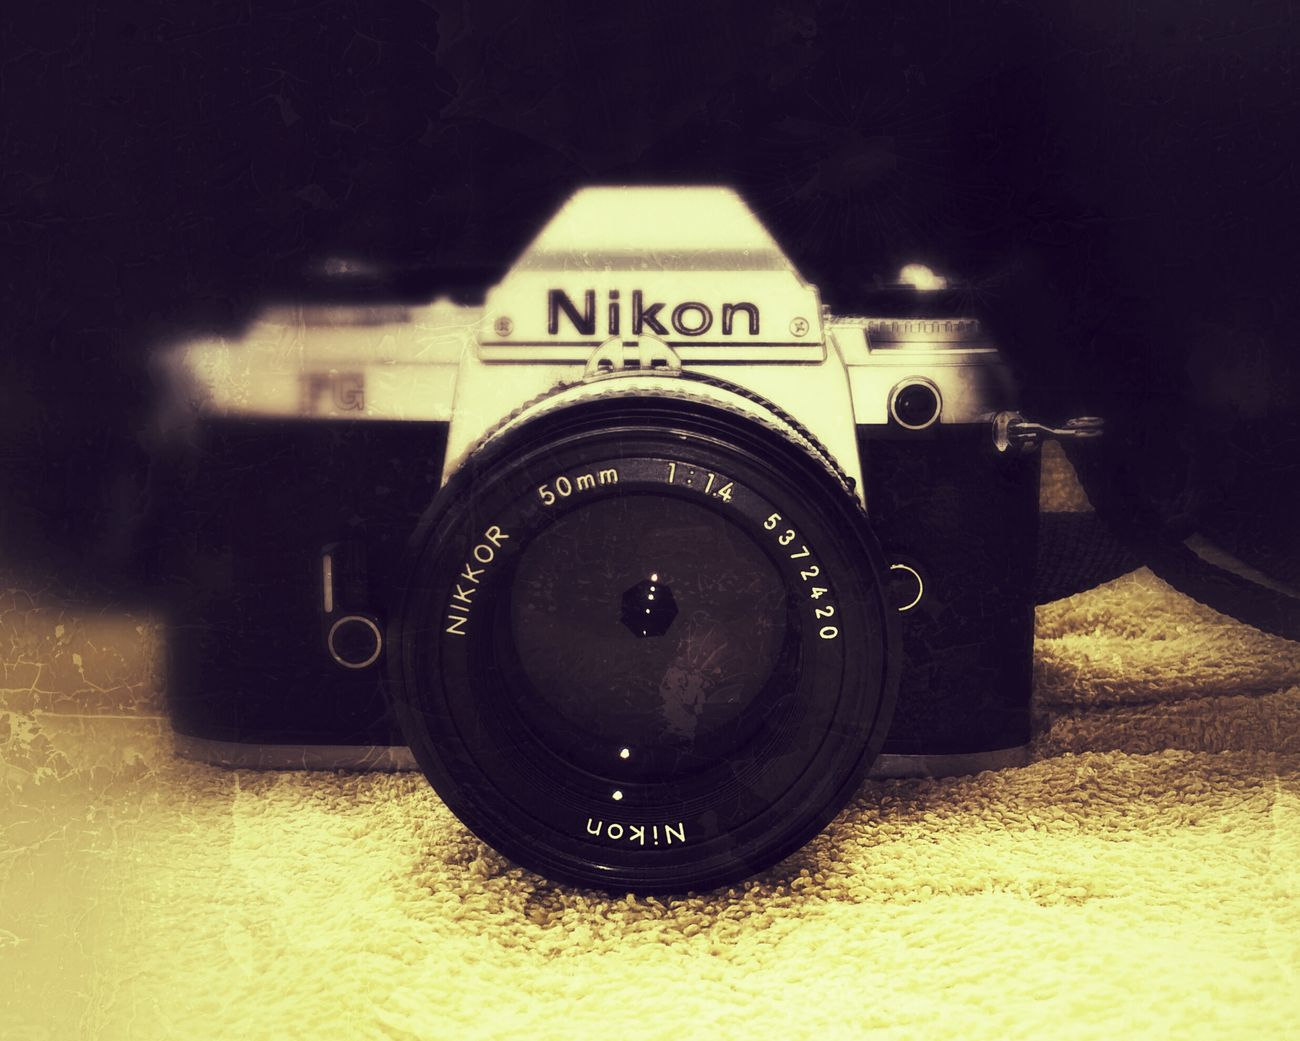 Nikon SLR Camera Taking Photos Single Lens Camera Beauty I Love It ❤ White Objectif Old But Awesome GrungeStyle 35 Mm Film Camera Shadows & Light No People Grunge Objektiv Old Camera Old Cameras Analogue Analog Nikonphotography Nikon Camera